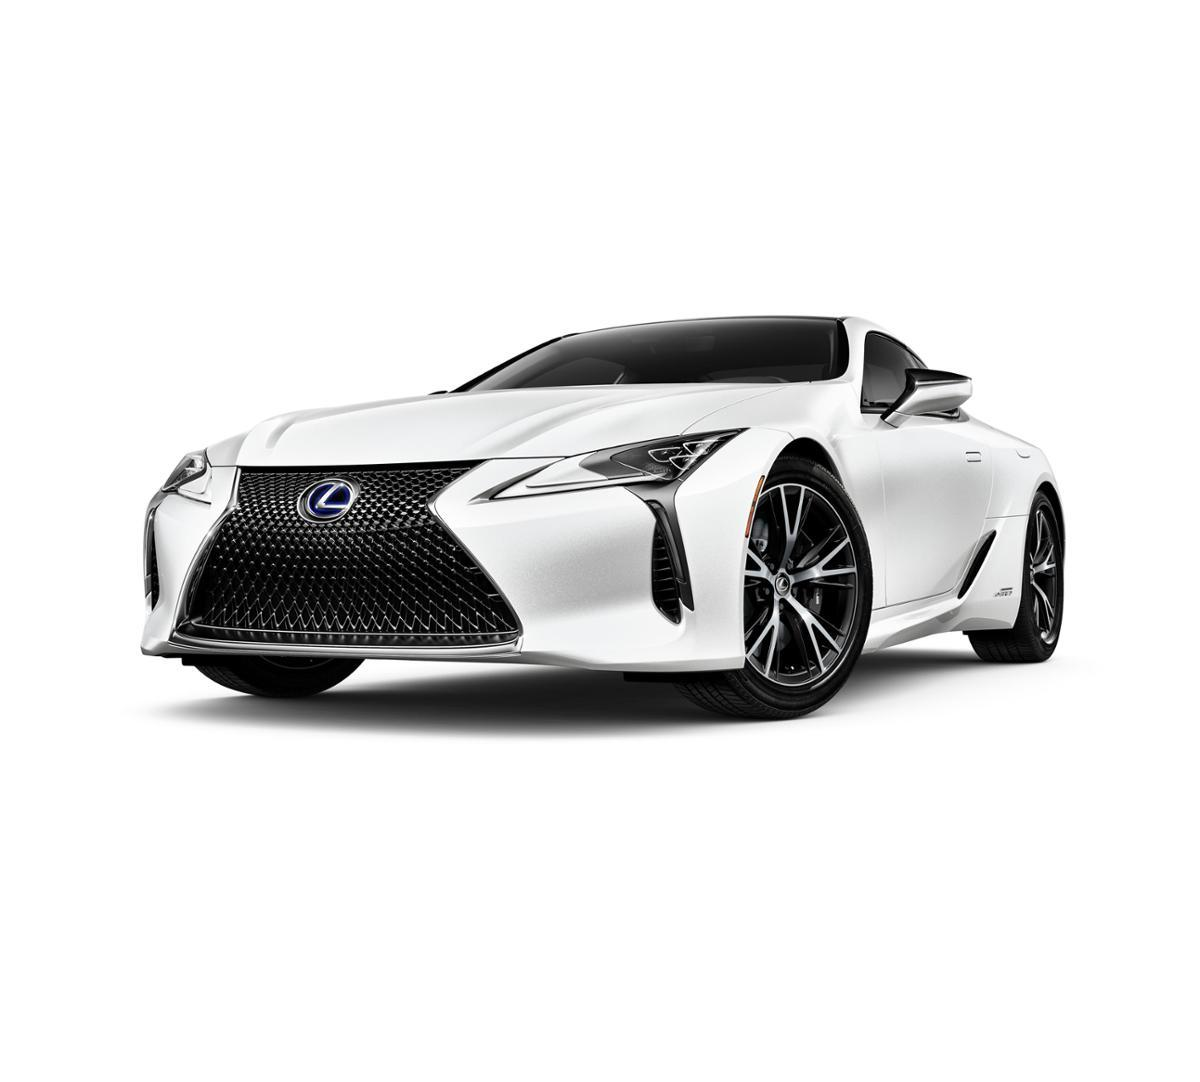 2018 Lexus LC 500h Vehicle Photo in Santa Monica, CA 90404